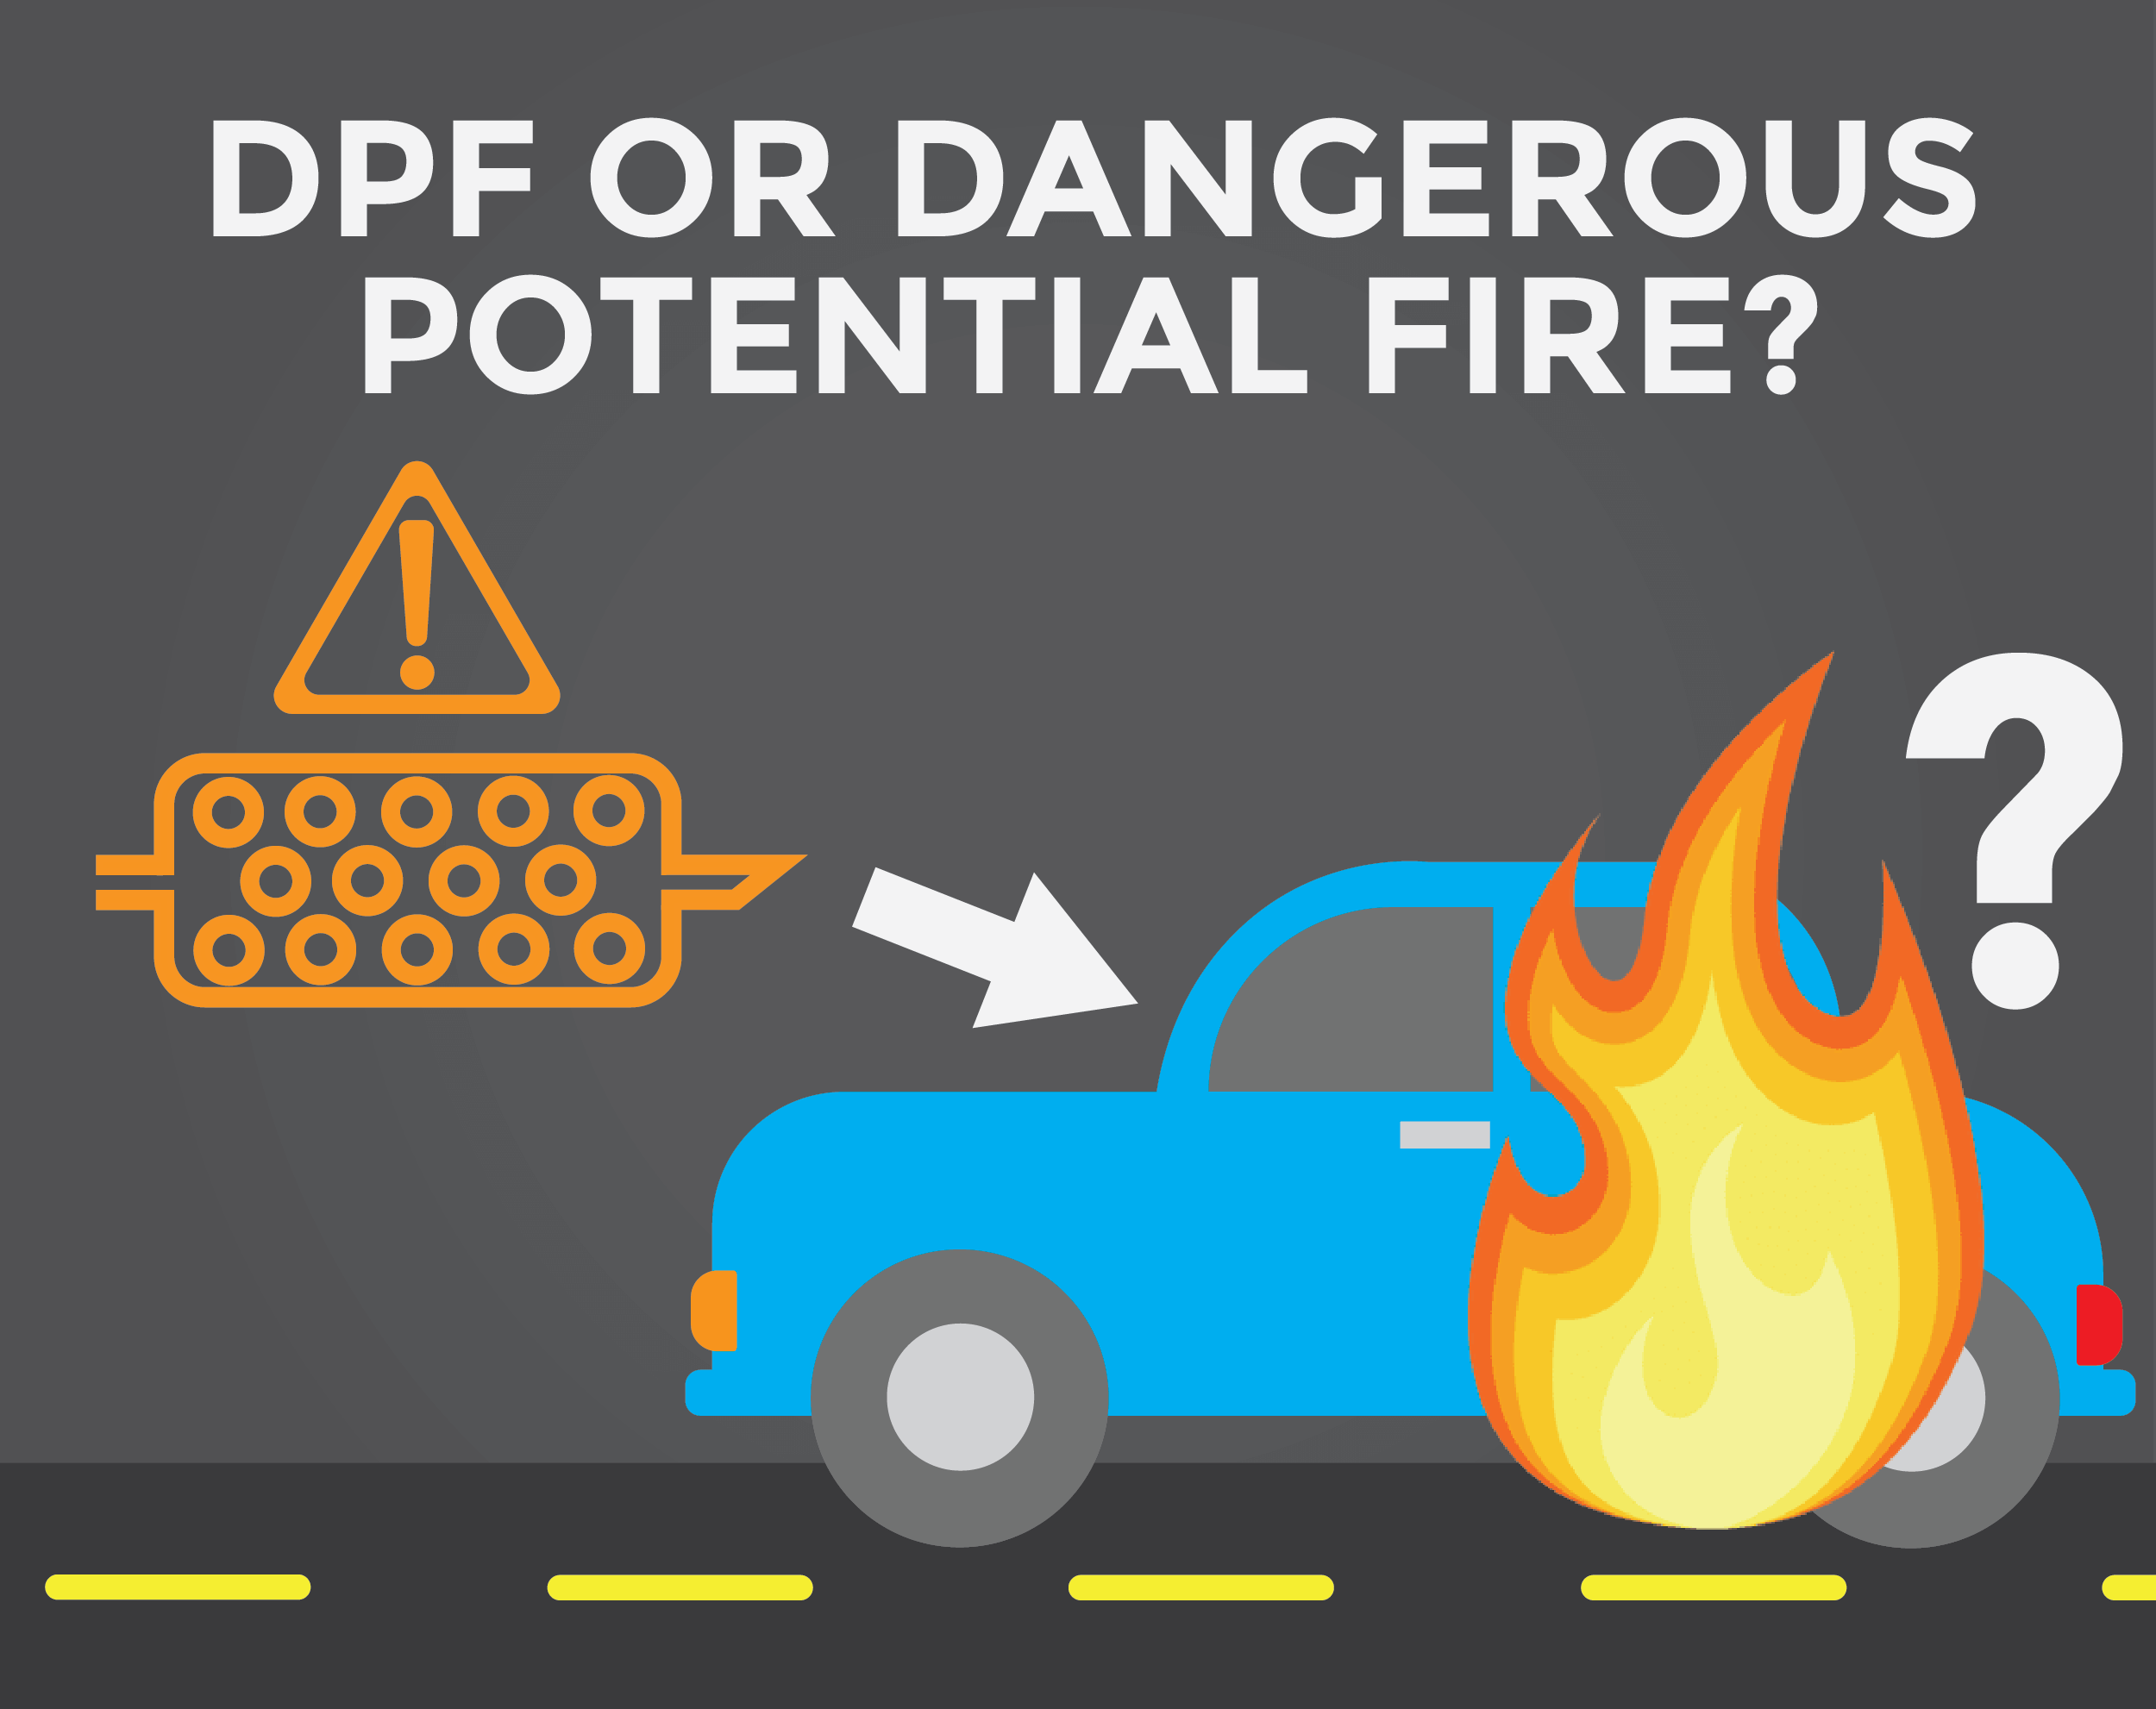 DPF or Dangerous Potential Fire?